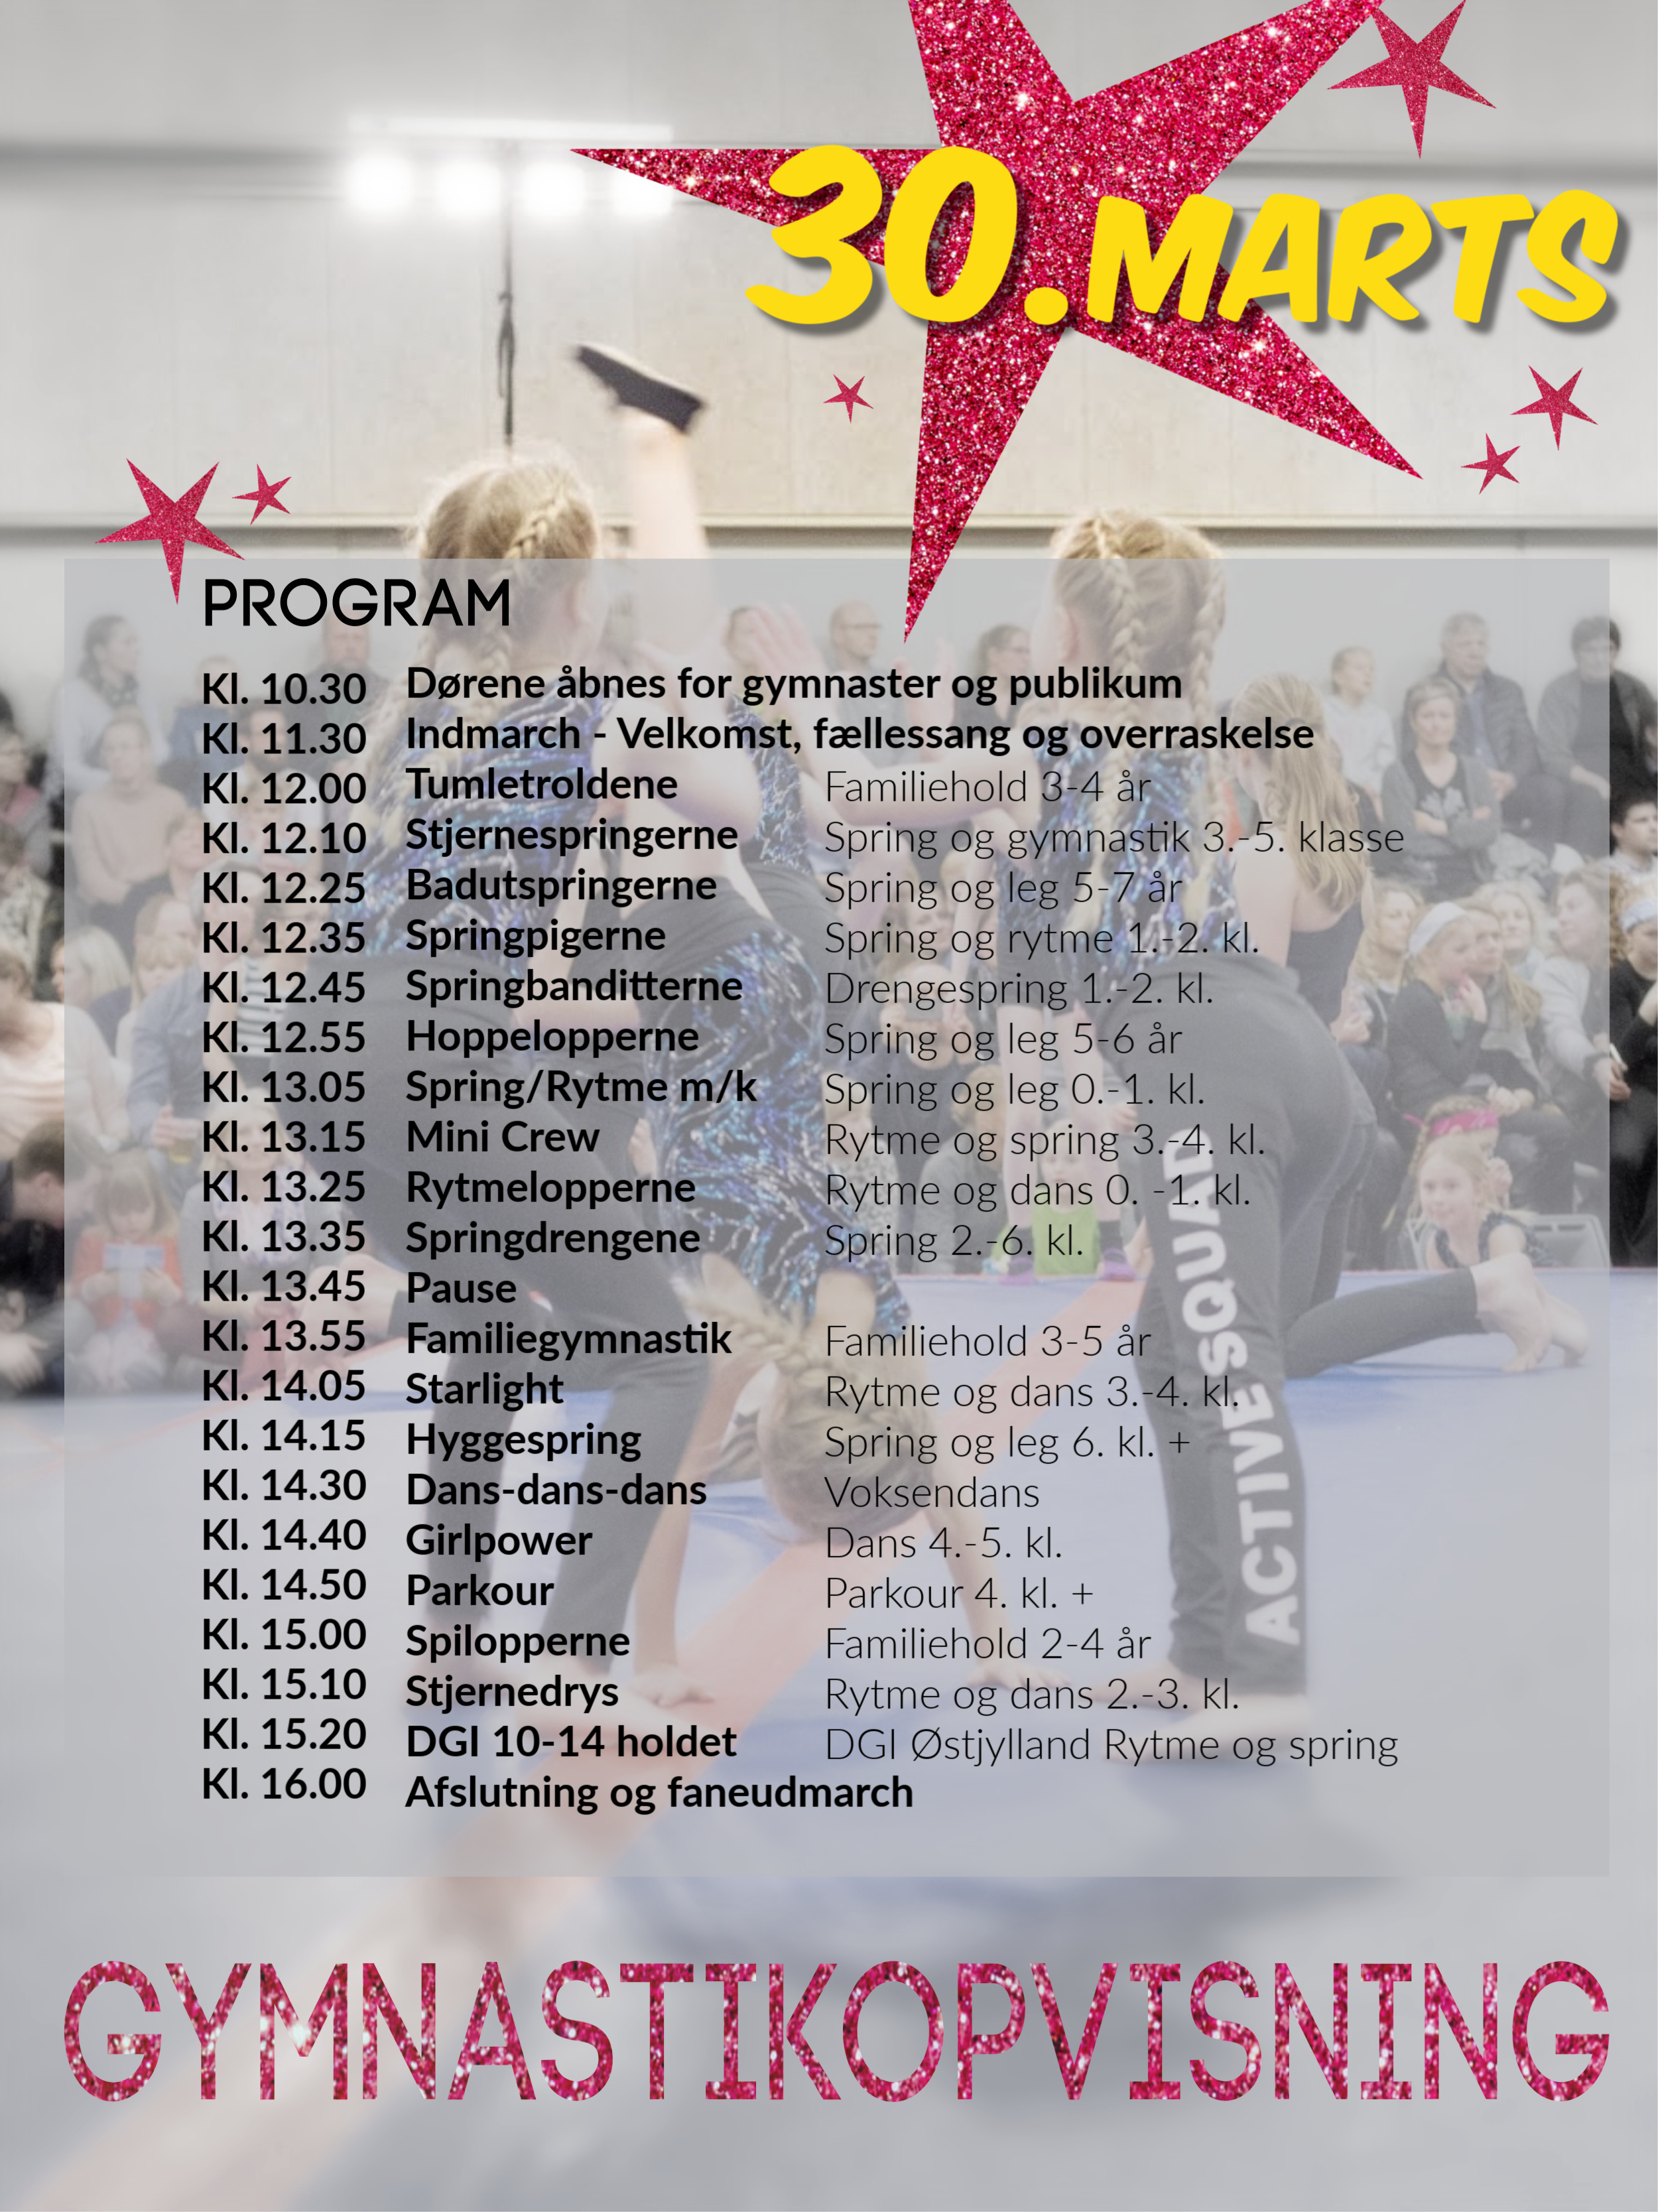 2019 Gymnastikopvisning Program